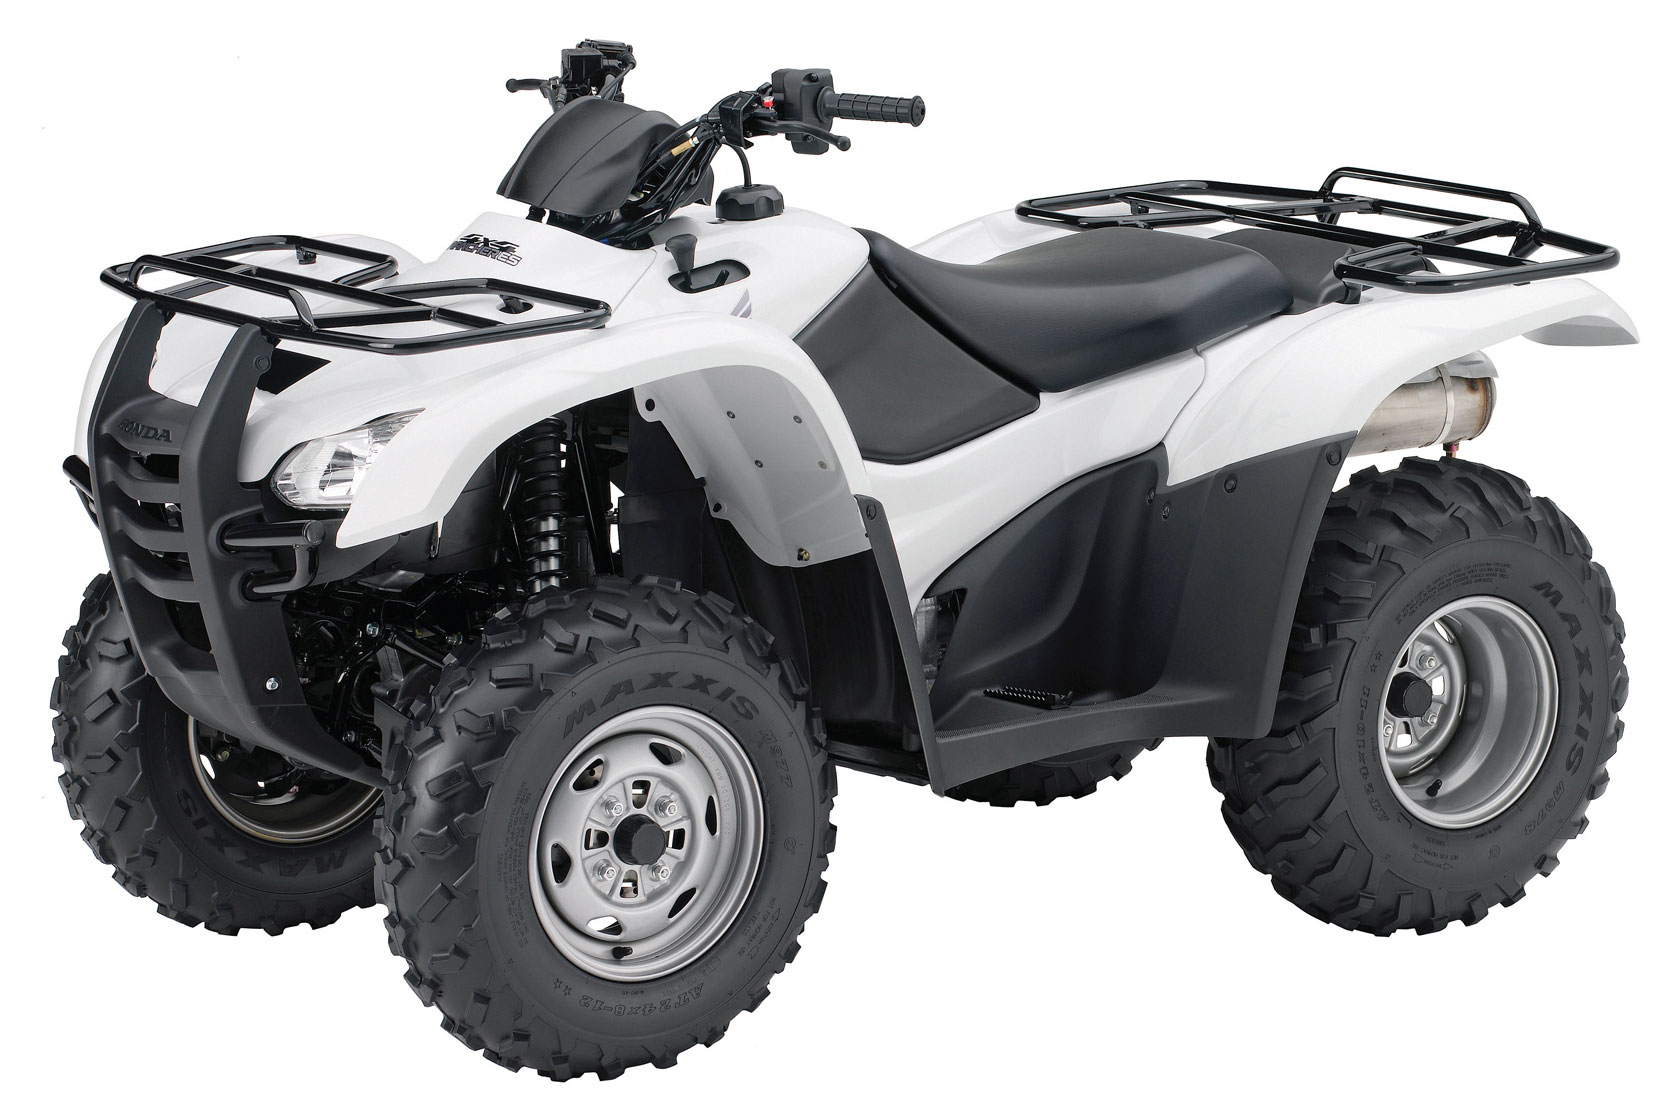 Honda Fourtrax Rancher 4x4 Es With Power Steering